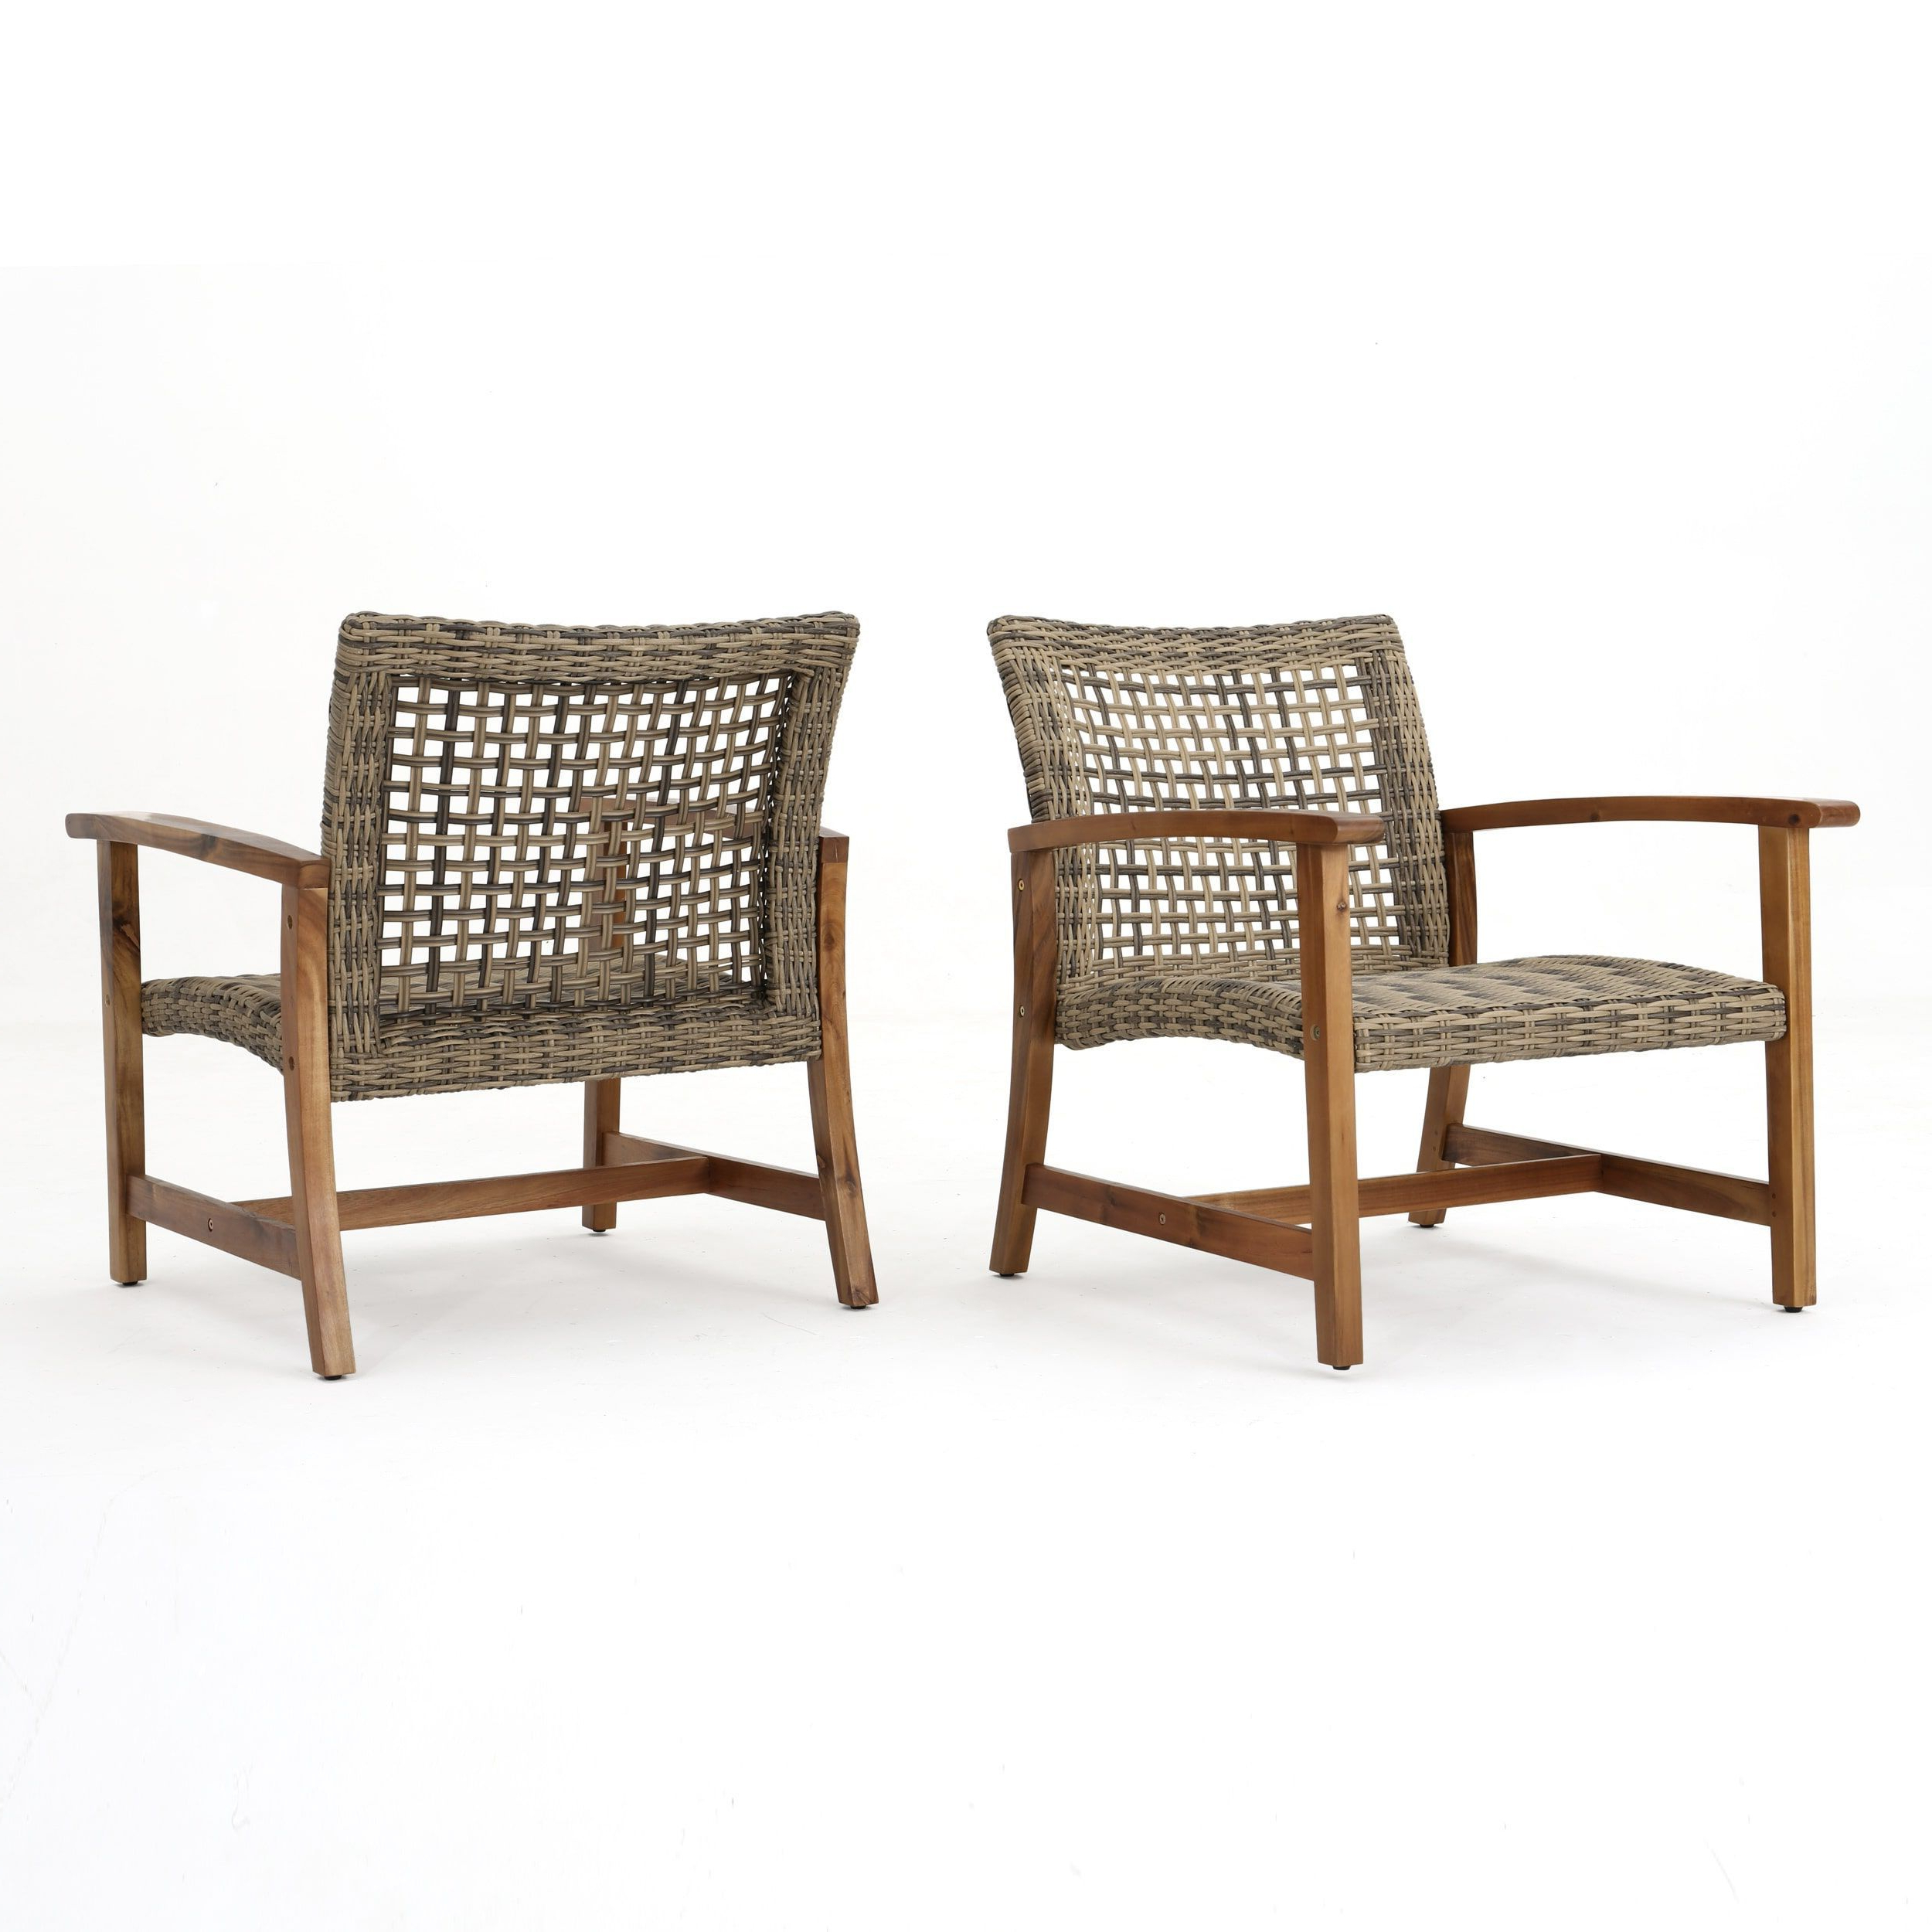 Most Current Hampton Outdoor Mid Century Wicker Club Chair (set Of 2) For Hampton Outdoor Chaise Lounges Acacia Wood And Wicker (Gallery 18 of 25)